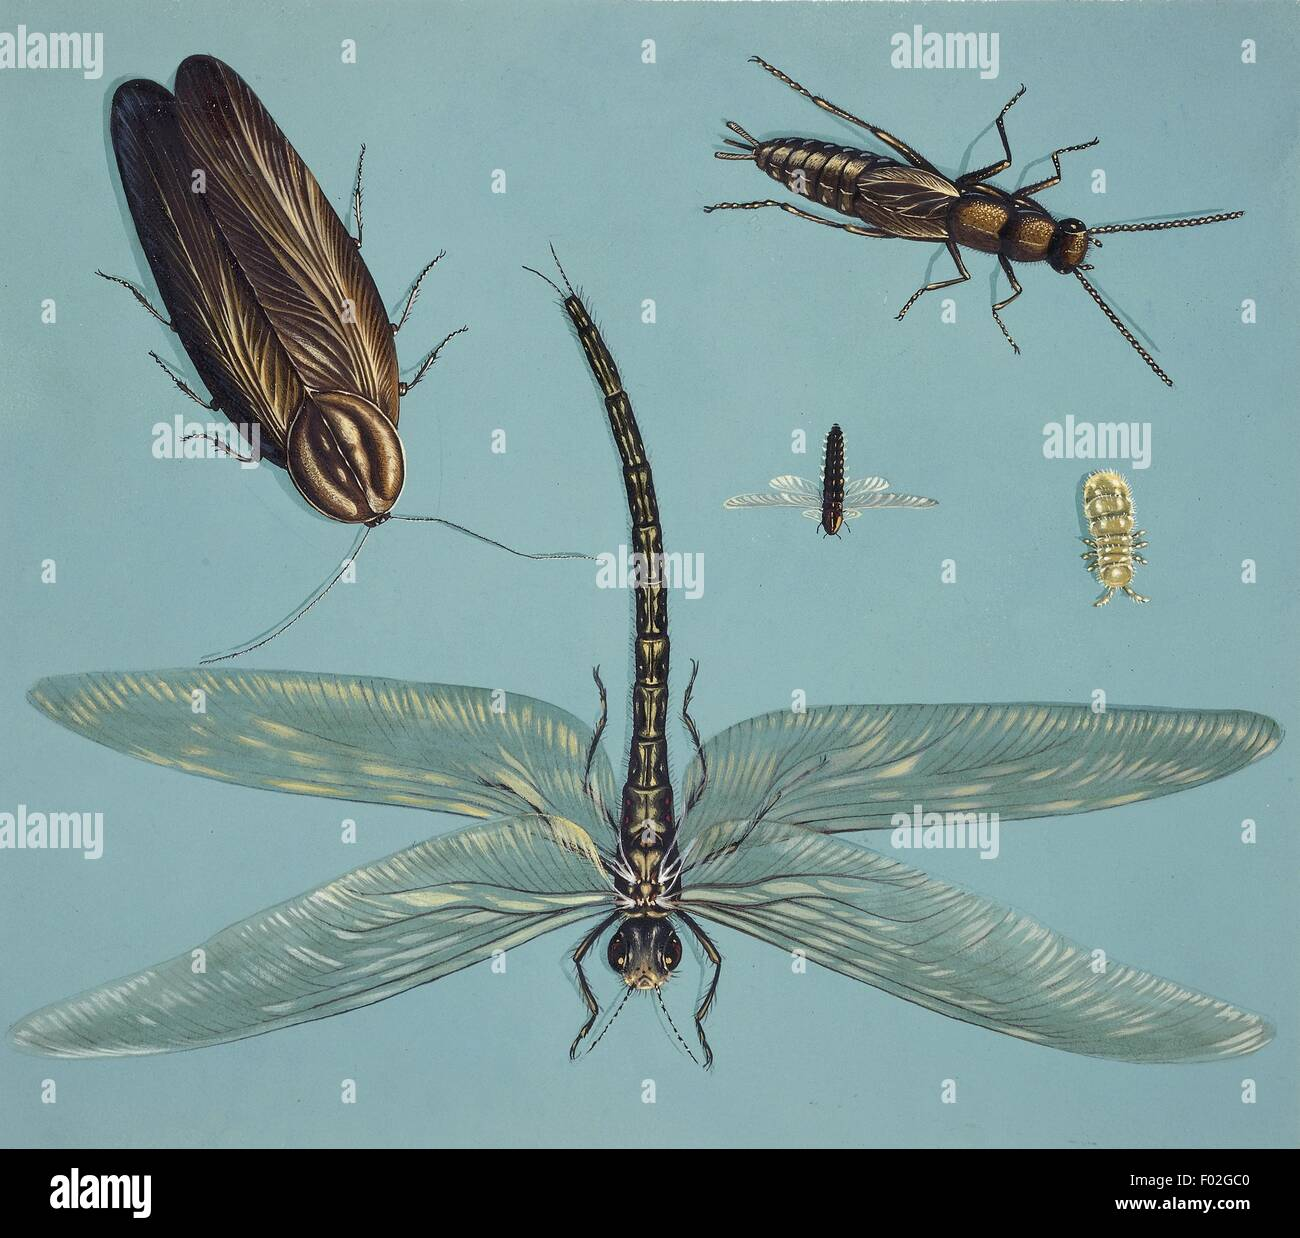 Prehistoric insects, illustration - Stock Image